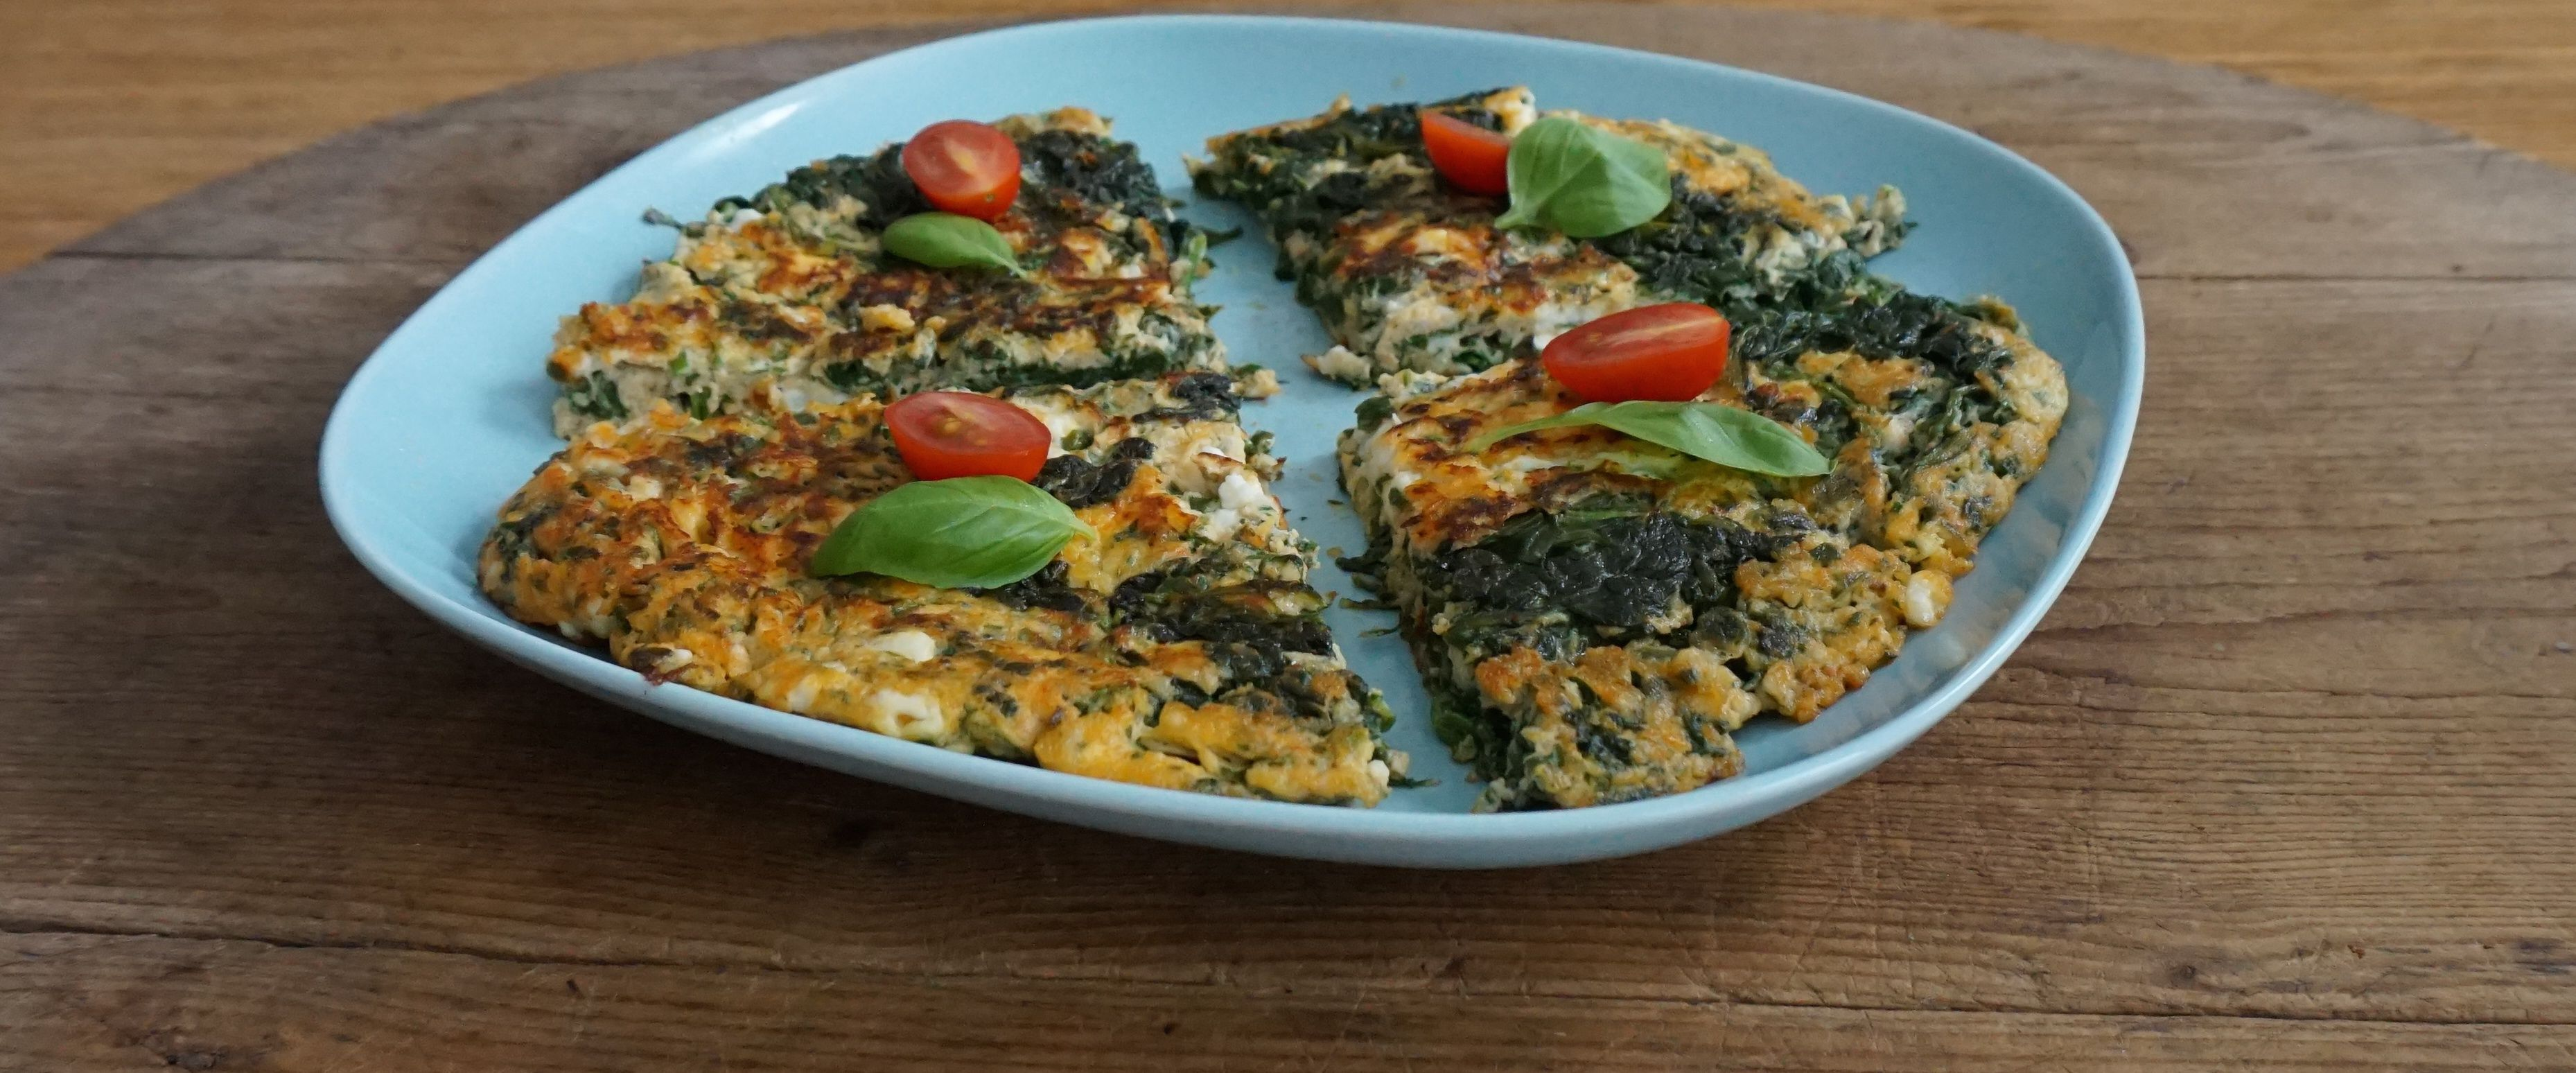 This Spinach Feta Omelette with fresh basil is super delicious and very quick to prepare. It's great for breakfast or lunch and even as a light dinner with a green salad on the side.